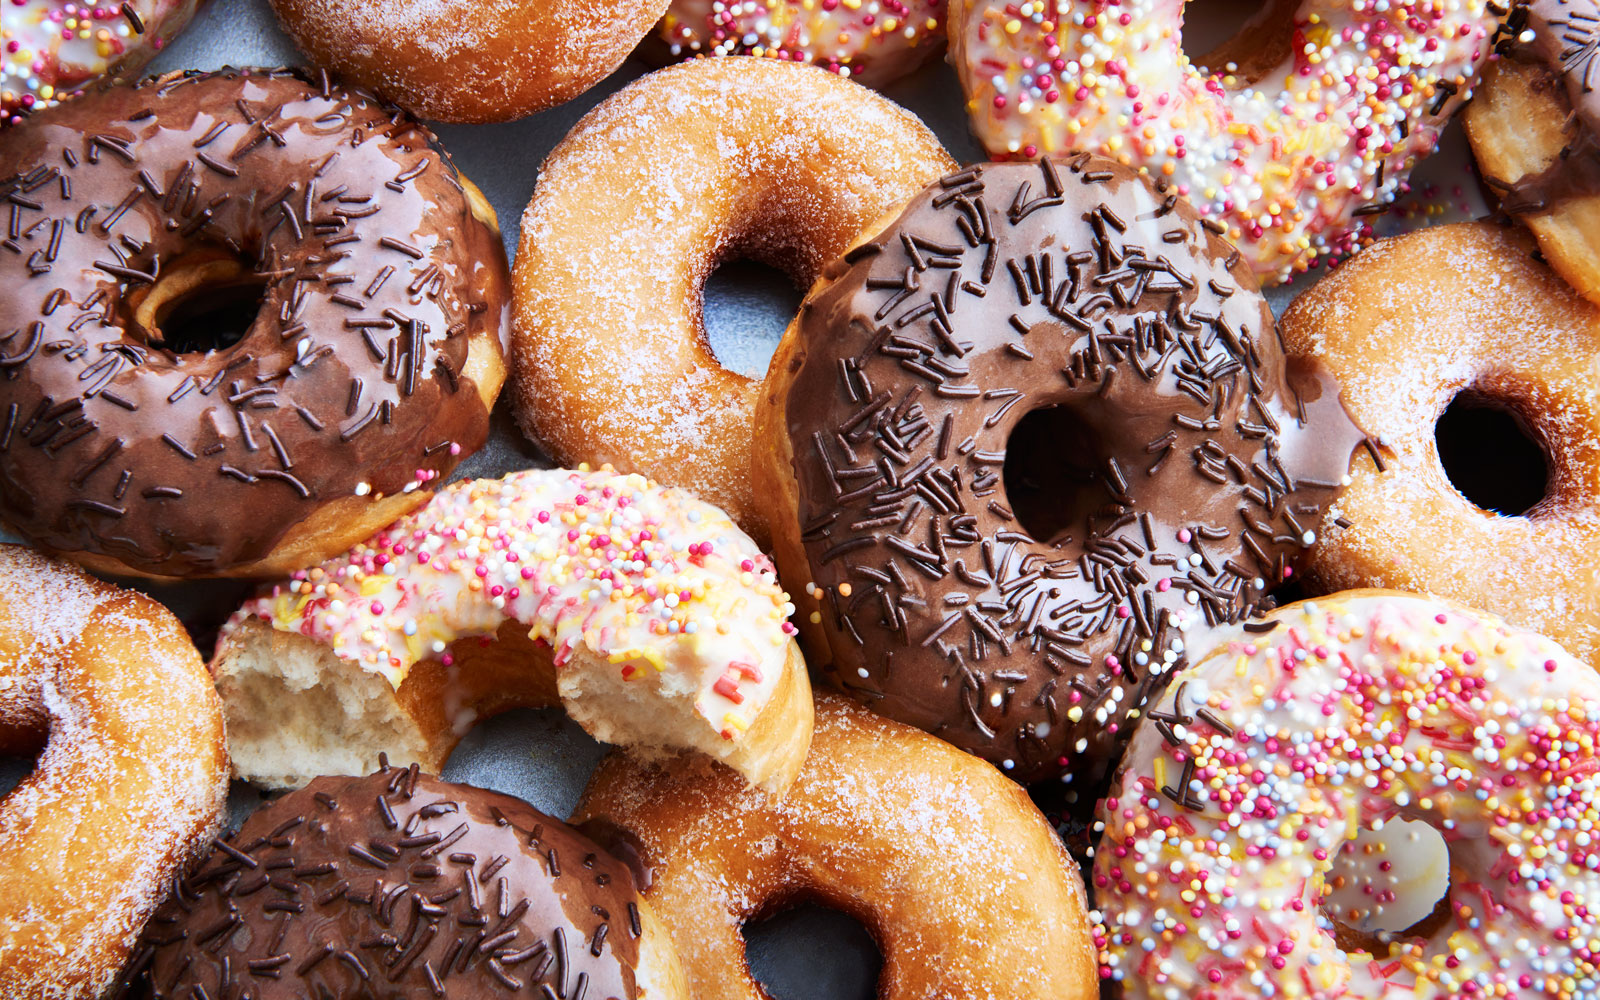 The Reason We Celebrate National Donut Day Can Be Traced Back to World War I